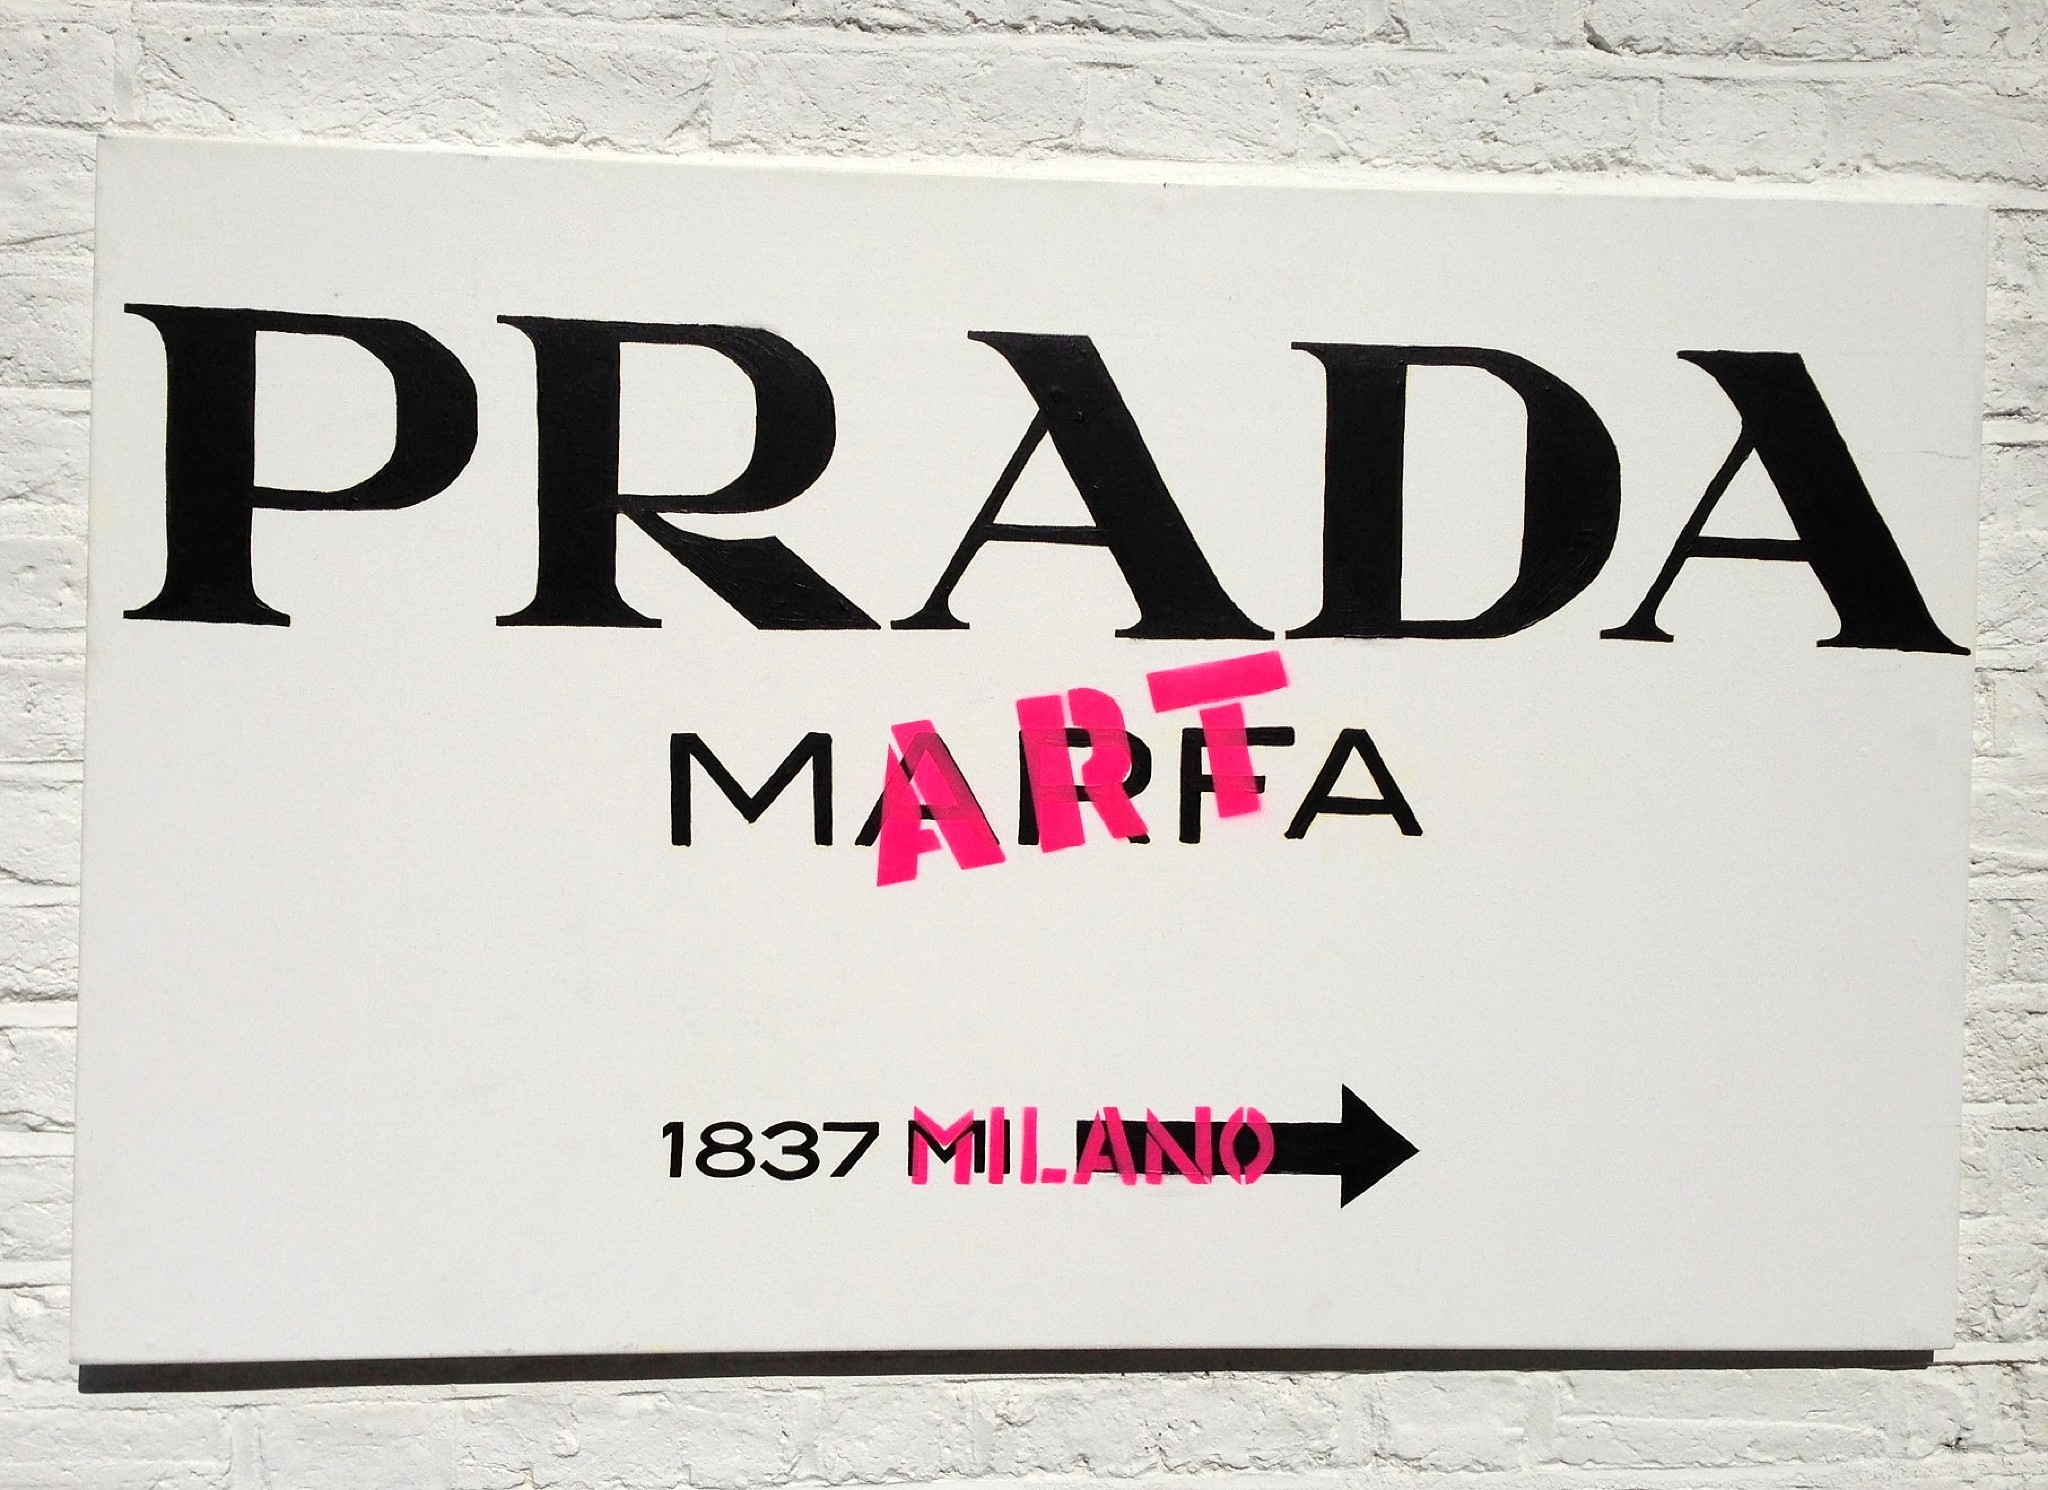 Prada Marfa version 2.0,by Louis-Nicolas Darbon